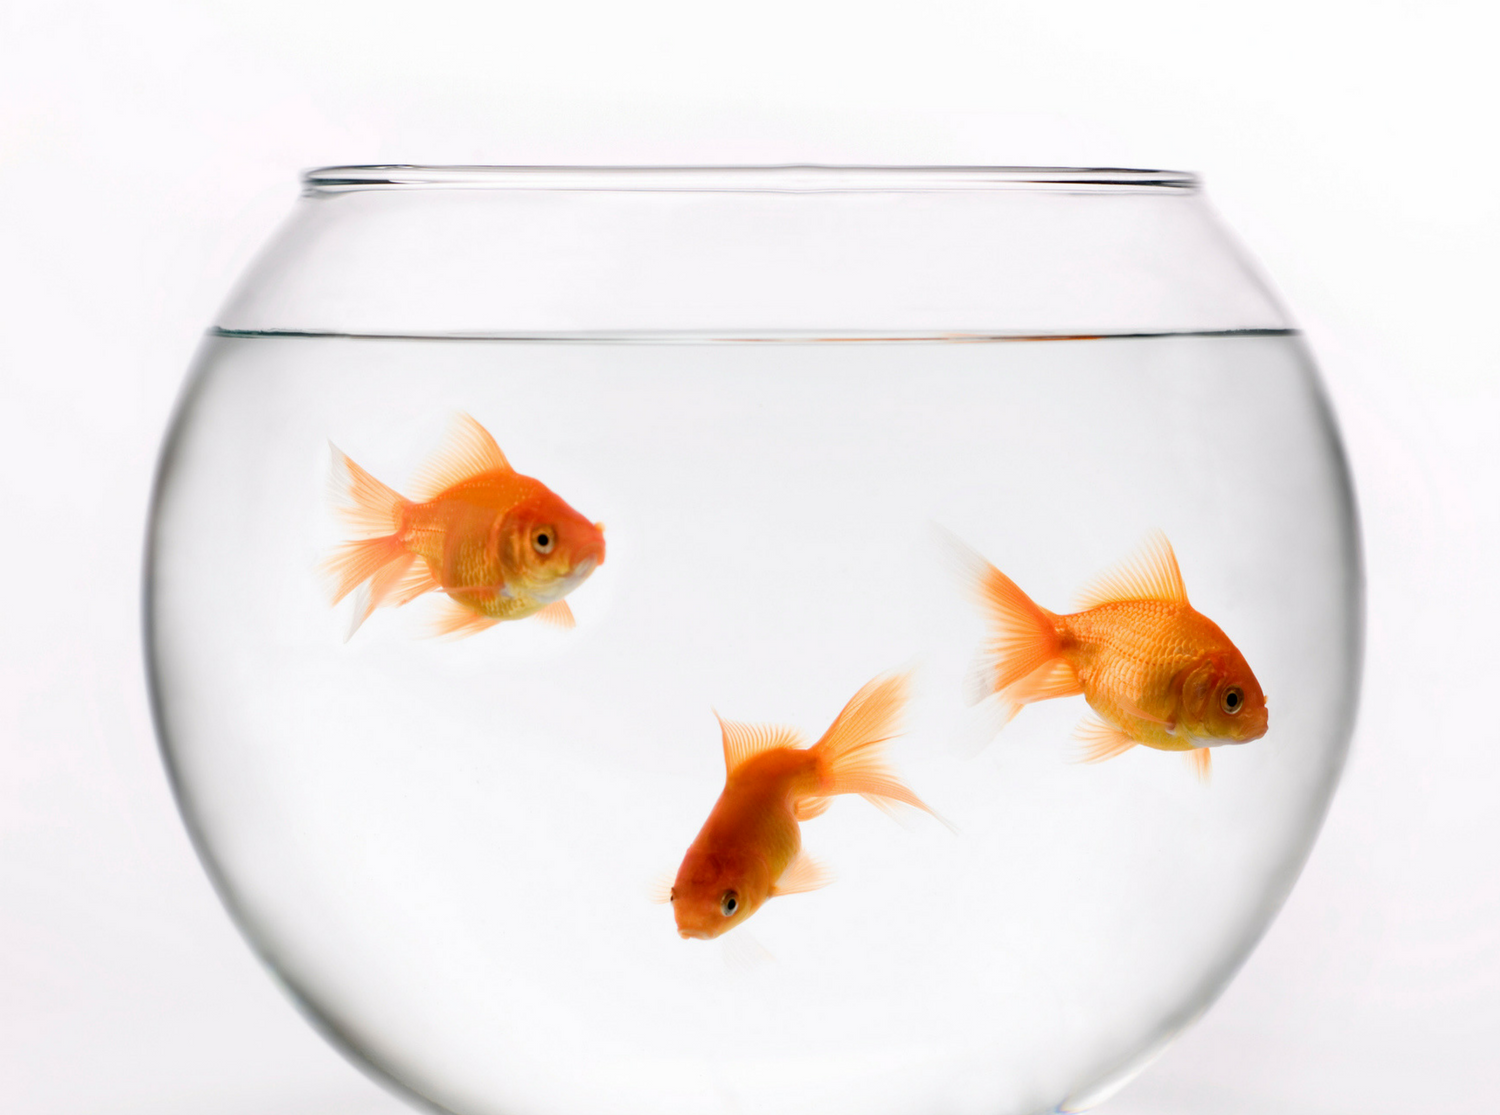 Totally Normal Activities That Are Illegal in Certain Places | Feng shui,  Goldfish, Goldfish bowl